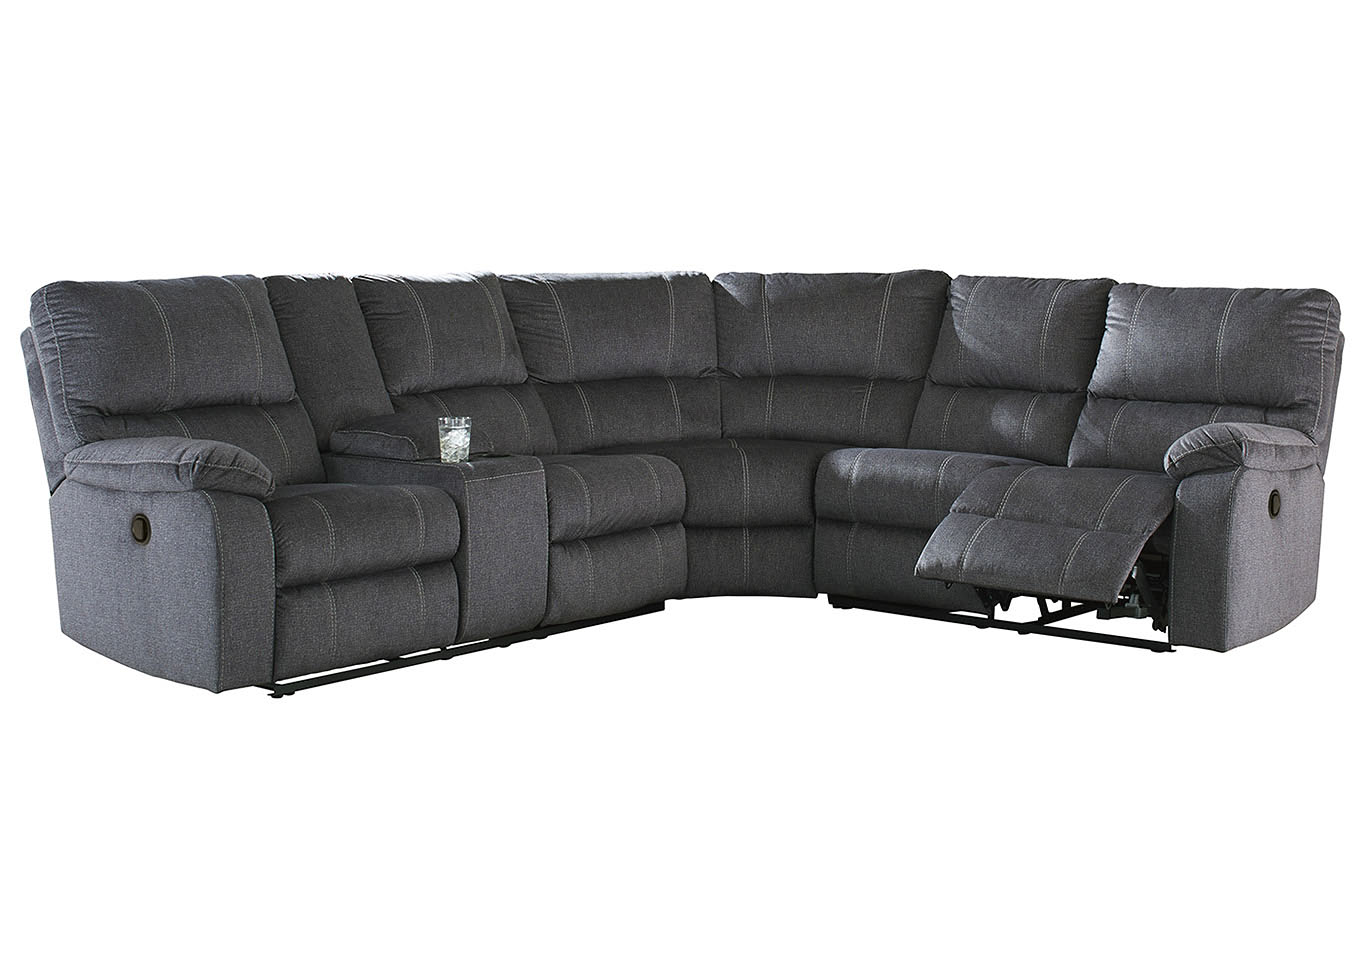 Urbino Charcoal Reclining Sectional w/Console,Signature Design By Ashley